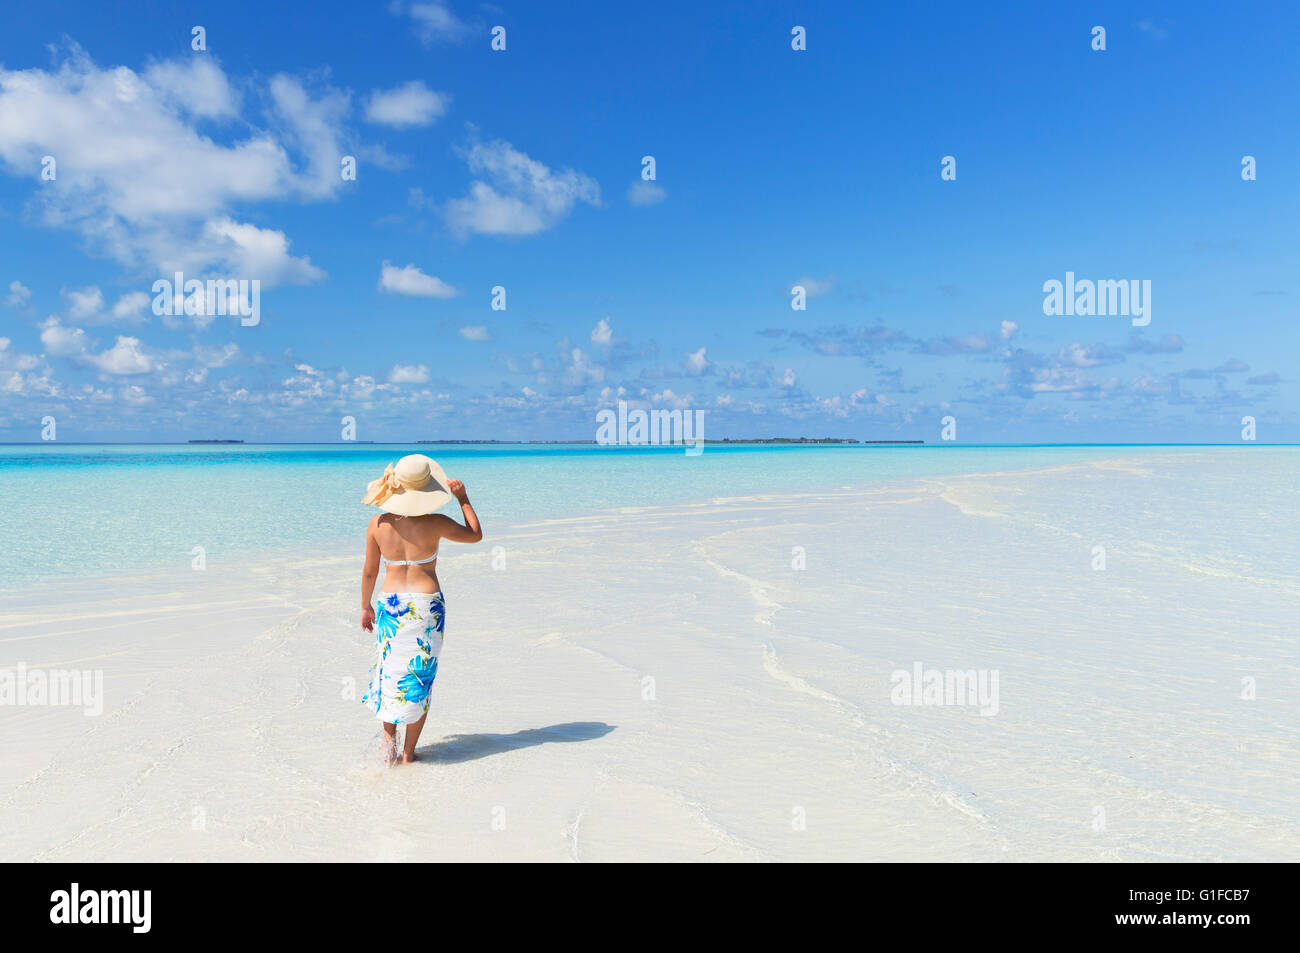 Woman on tropical island, South Male Atoll, Kaafu Atoll, Maldives - Stock Image